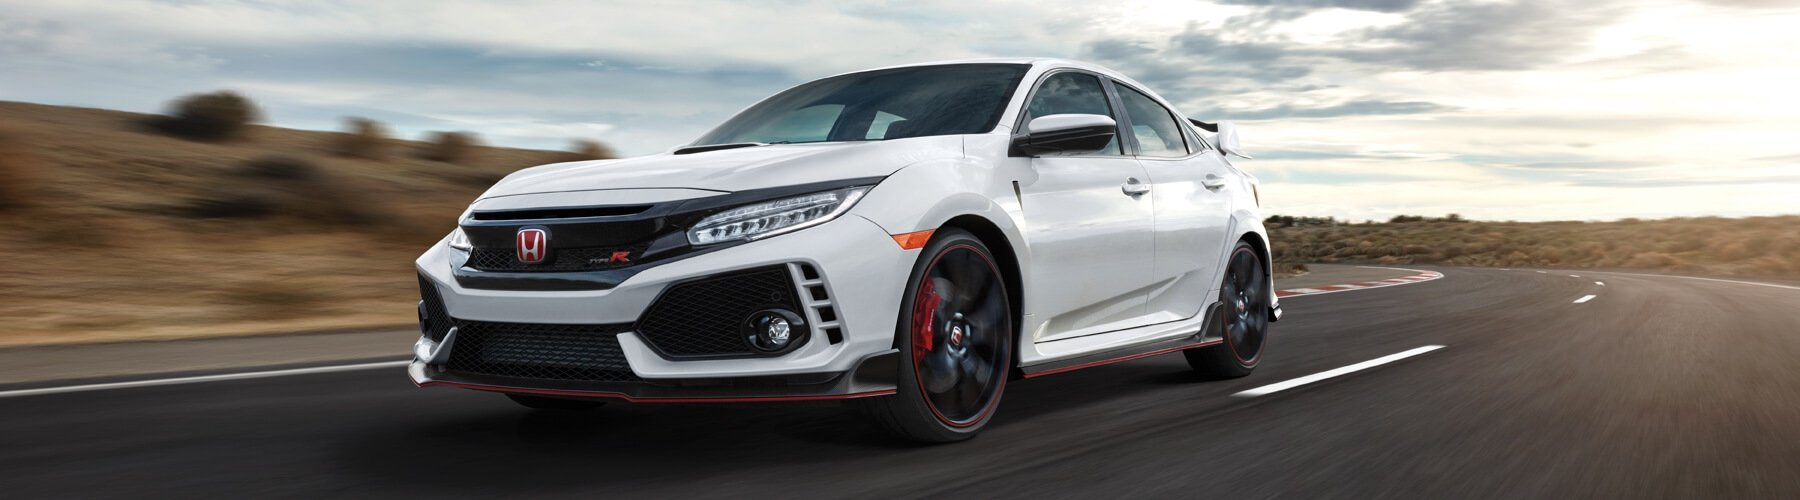 2017 Honda Civic Type R Banner